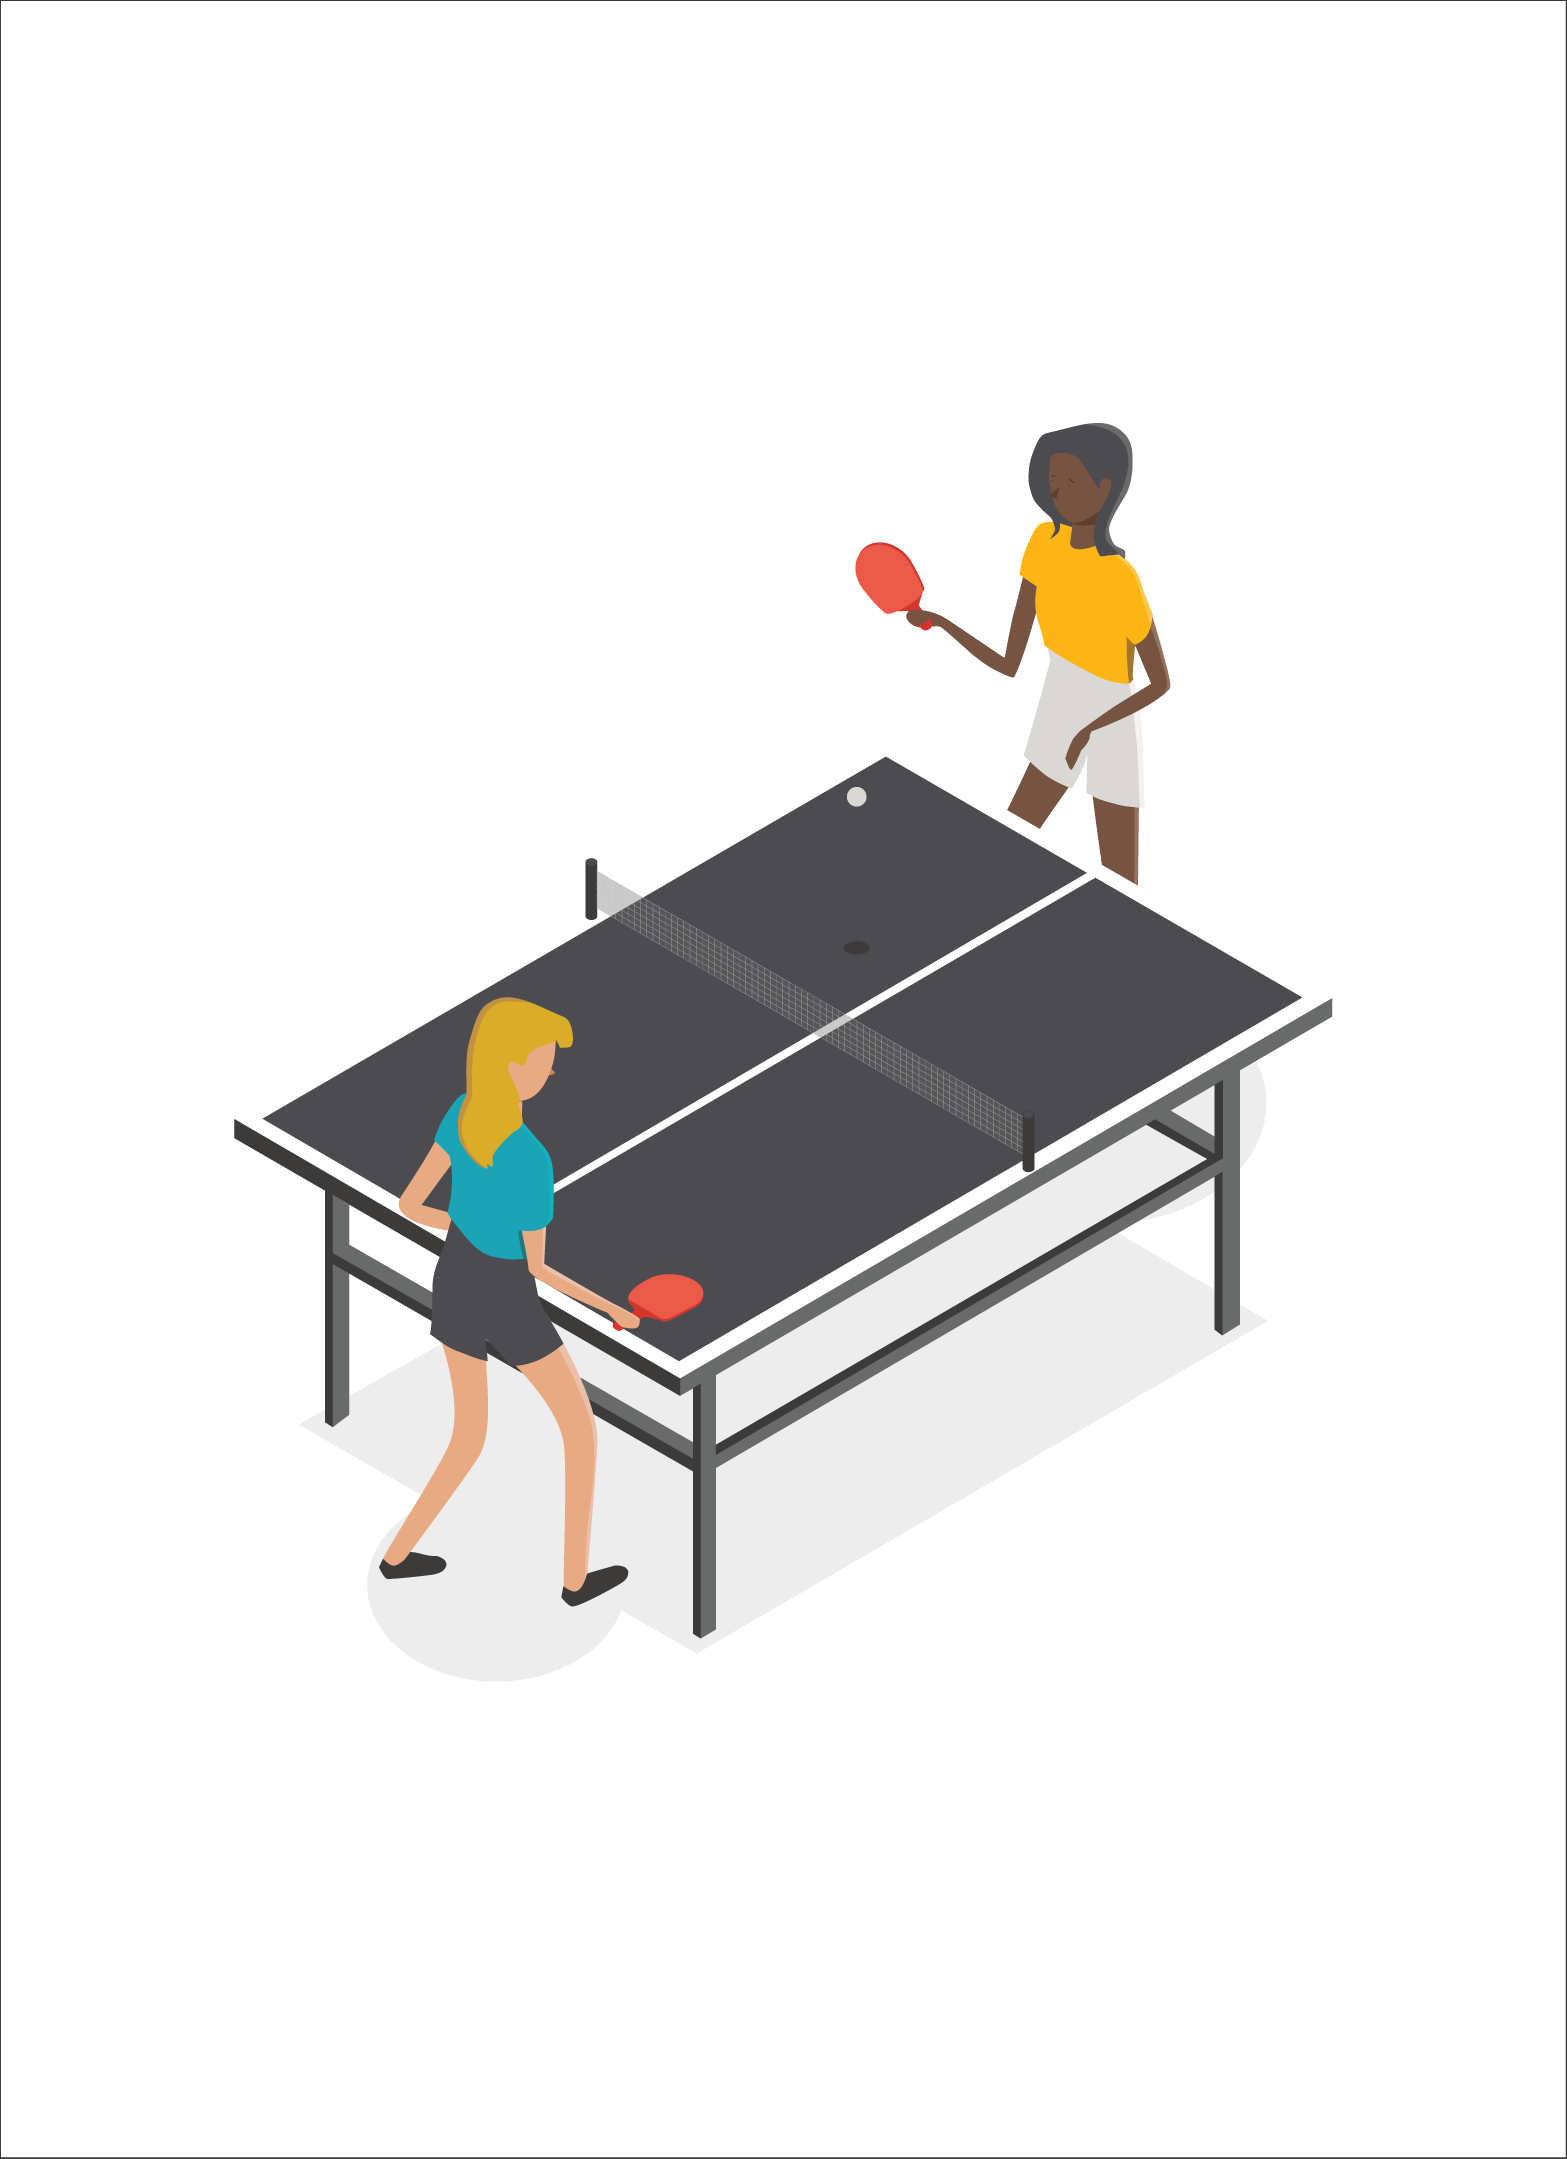 Vector Ping Pong Icon Racket Ping Pong Pingpong Png And Vector With Transparent Background For Free Download In 2020 Ping Pong Icon Illustration Cartoon Styles